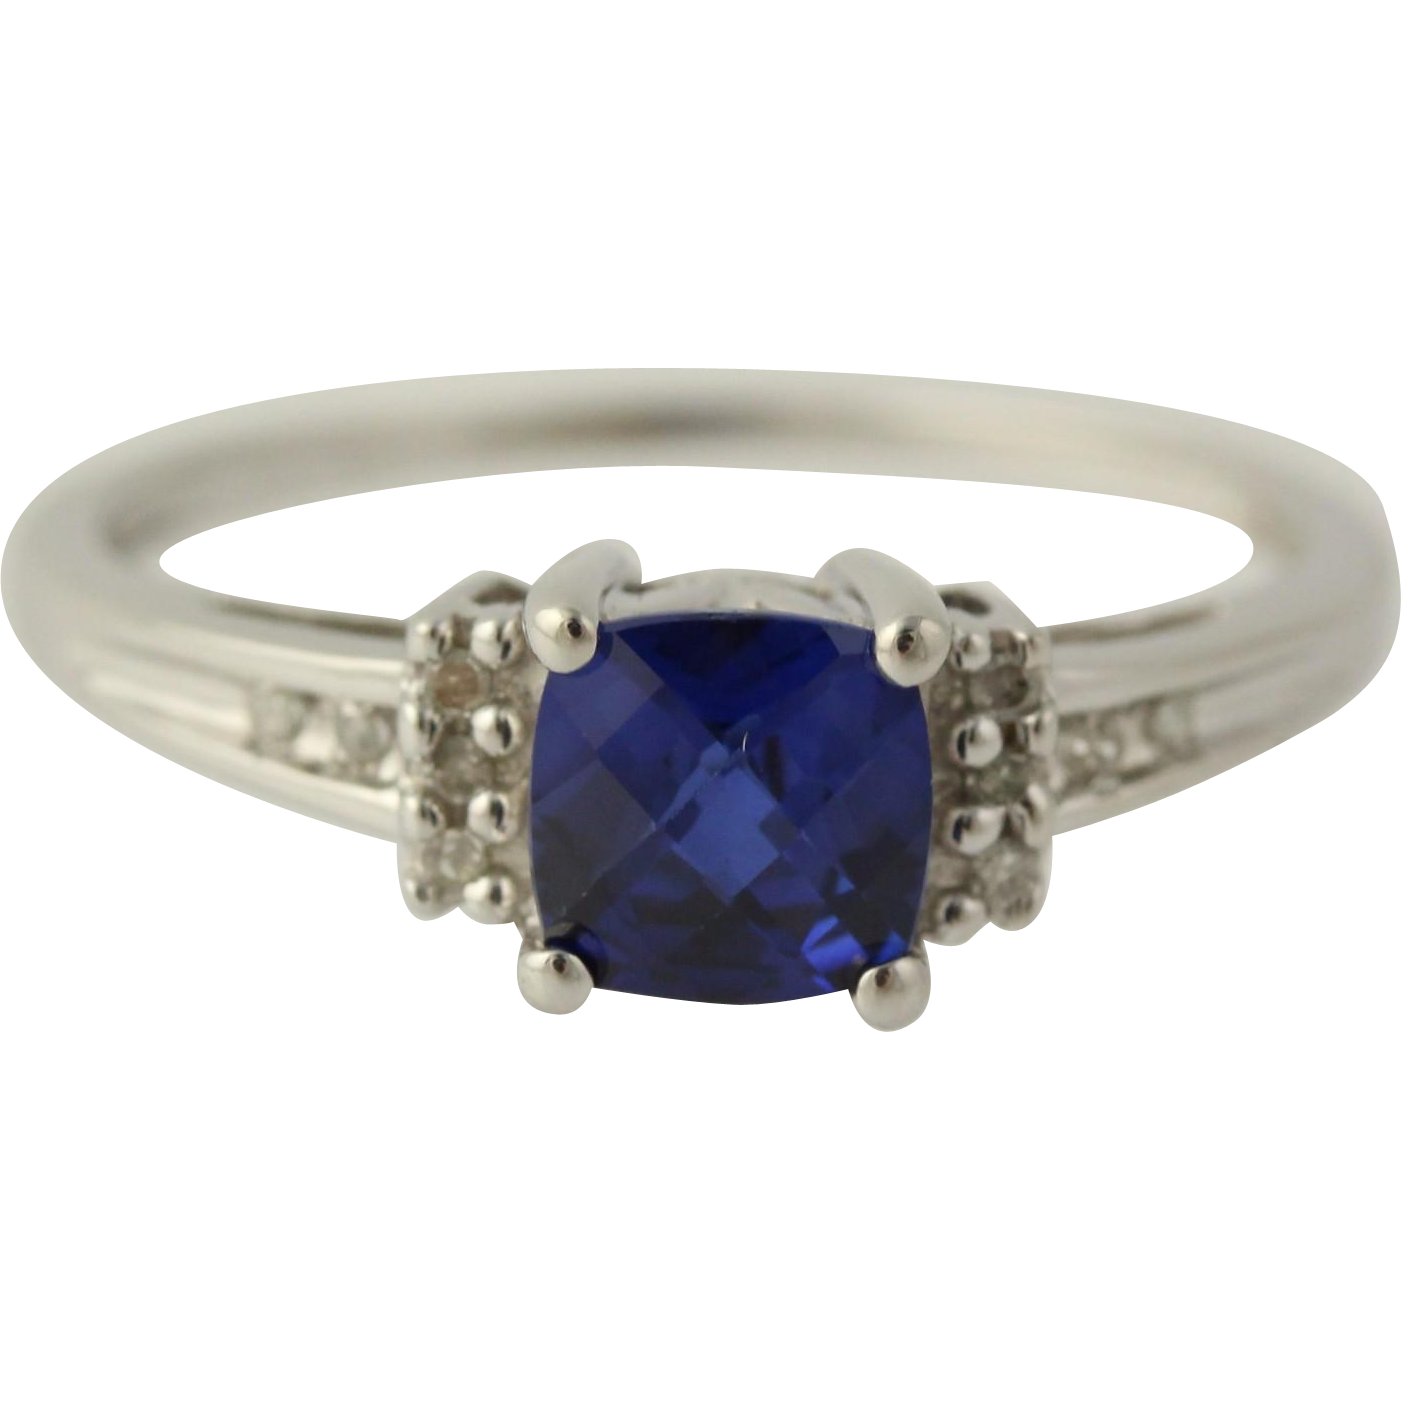 Synthetic Sapphire & Diamond Ring - 14k White Gold 9 1/4 - 9 1/2 Fine 1.05ctw